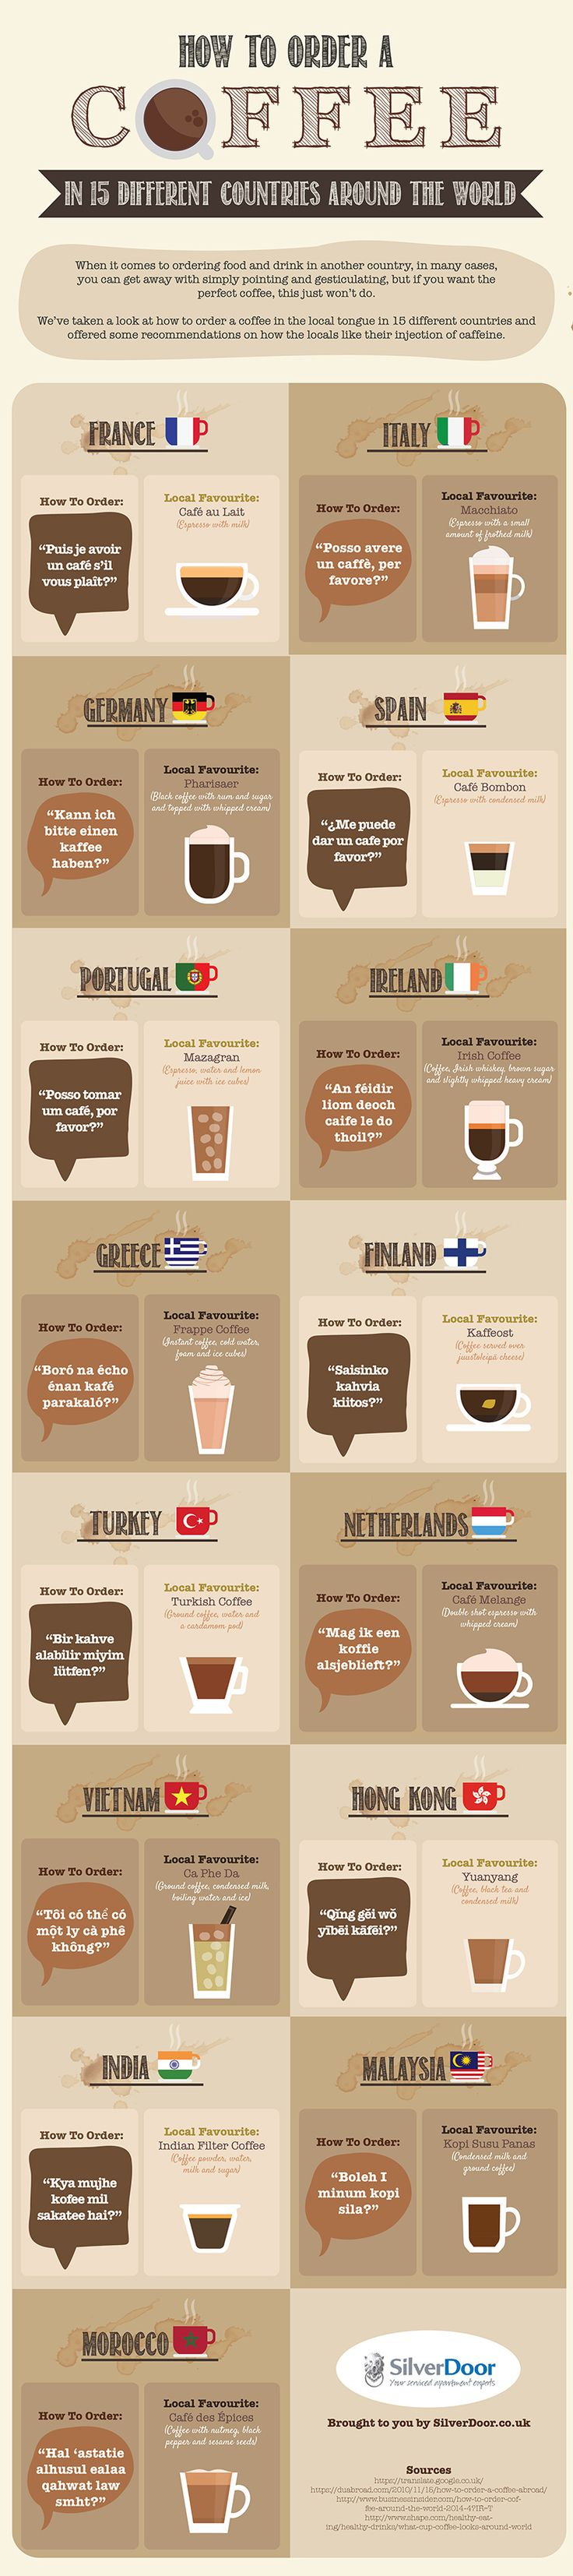 Here's a handy guide: How To Order A Coffee In 15 Different Countries Around The World [Infographic]